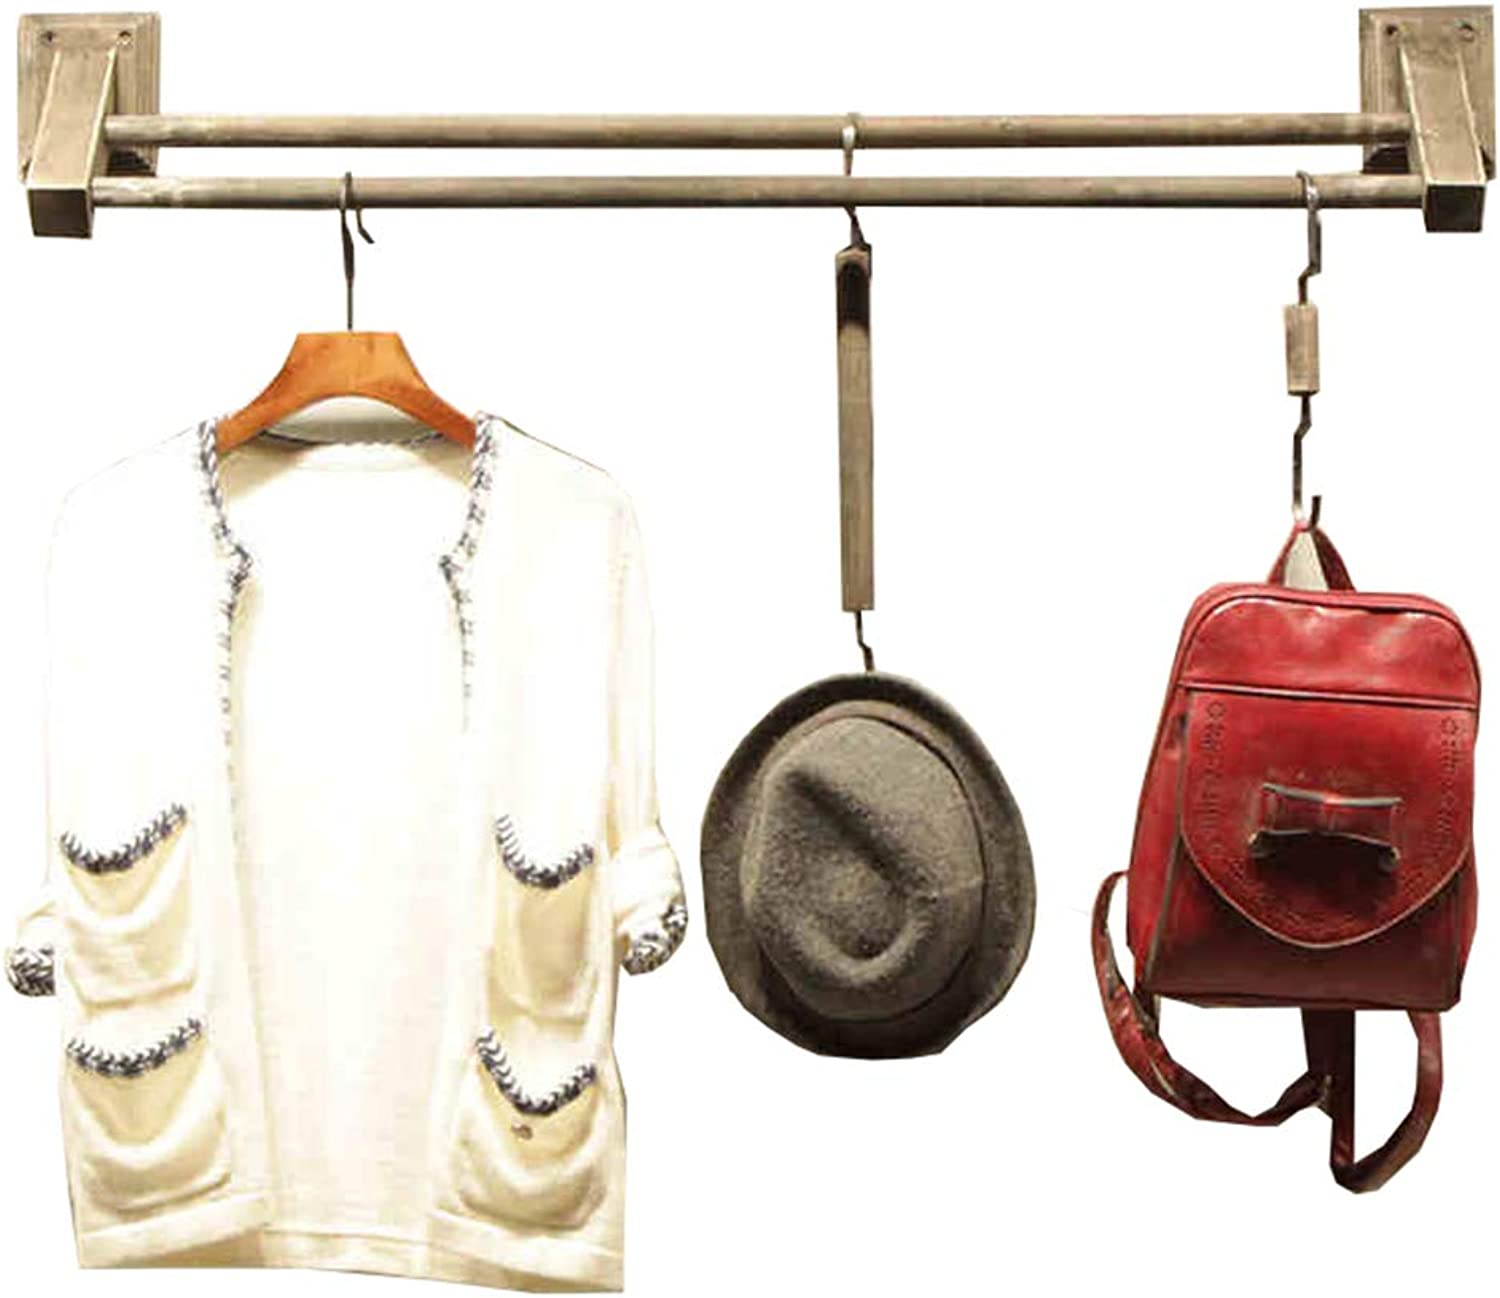 LAXF- Coat Racks Free Standing Wooden Wooden Wall Mounted Clothes Hanging for Home Clothing Store,Racks Display Stand,Wall Shelf,Display Shelves,Clothing Rack (Size   60CM)